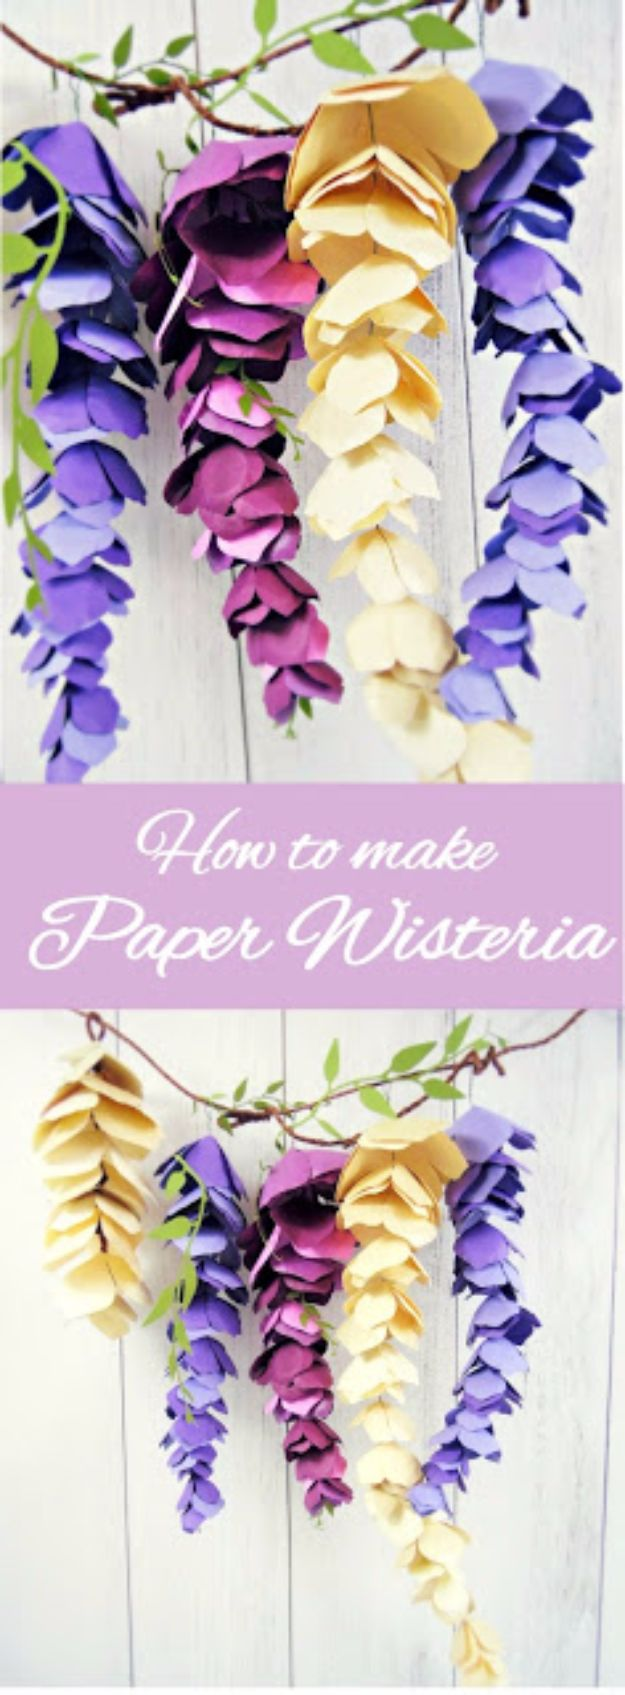 DIY Paper Flowers - Paper Wisteria - How To Make A Paper Flower - Large Wedding Backdrop for Wall Decor - Easy Tissue Paper Flower Tutorial for Kids - Giant Projects for Photo Backdrops - Daisy, Roses, Bouquets, Centerpieces - Cricut Template and Step by Step Tutorial http://diyjoy.com/diy-paper-flowers